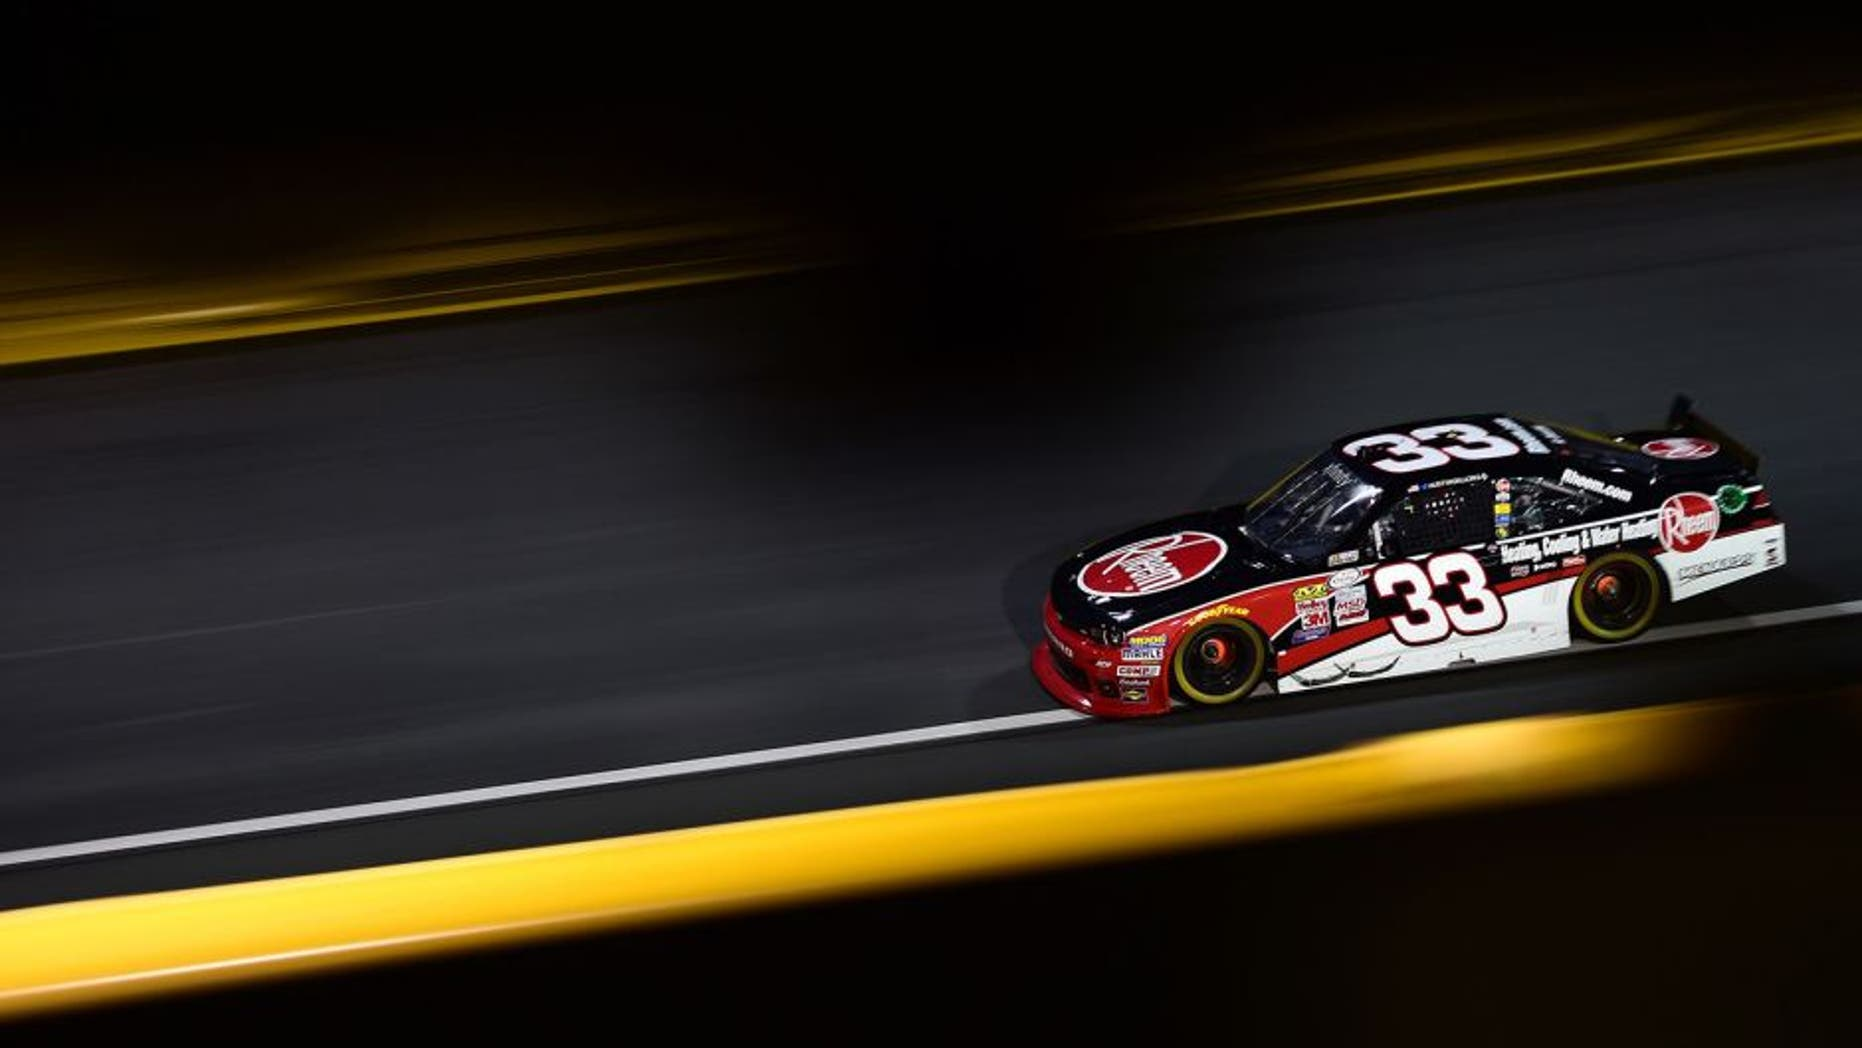 CHARLOTTE, NC - OCTOBER 09: Austin Dillon, driver of the #33 Rheem Chevrolet, races during the NASCAR XFINITY Series Drive for the Cure 300 at Charlotte Motor Speedway on October 9, 2015 in Charlotte, North Carolina. (Photo by Jared C. Tilton/NASCAR via Getty Images)